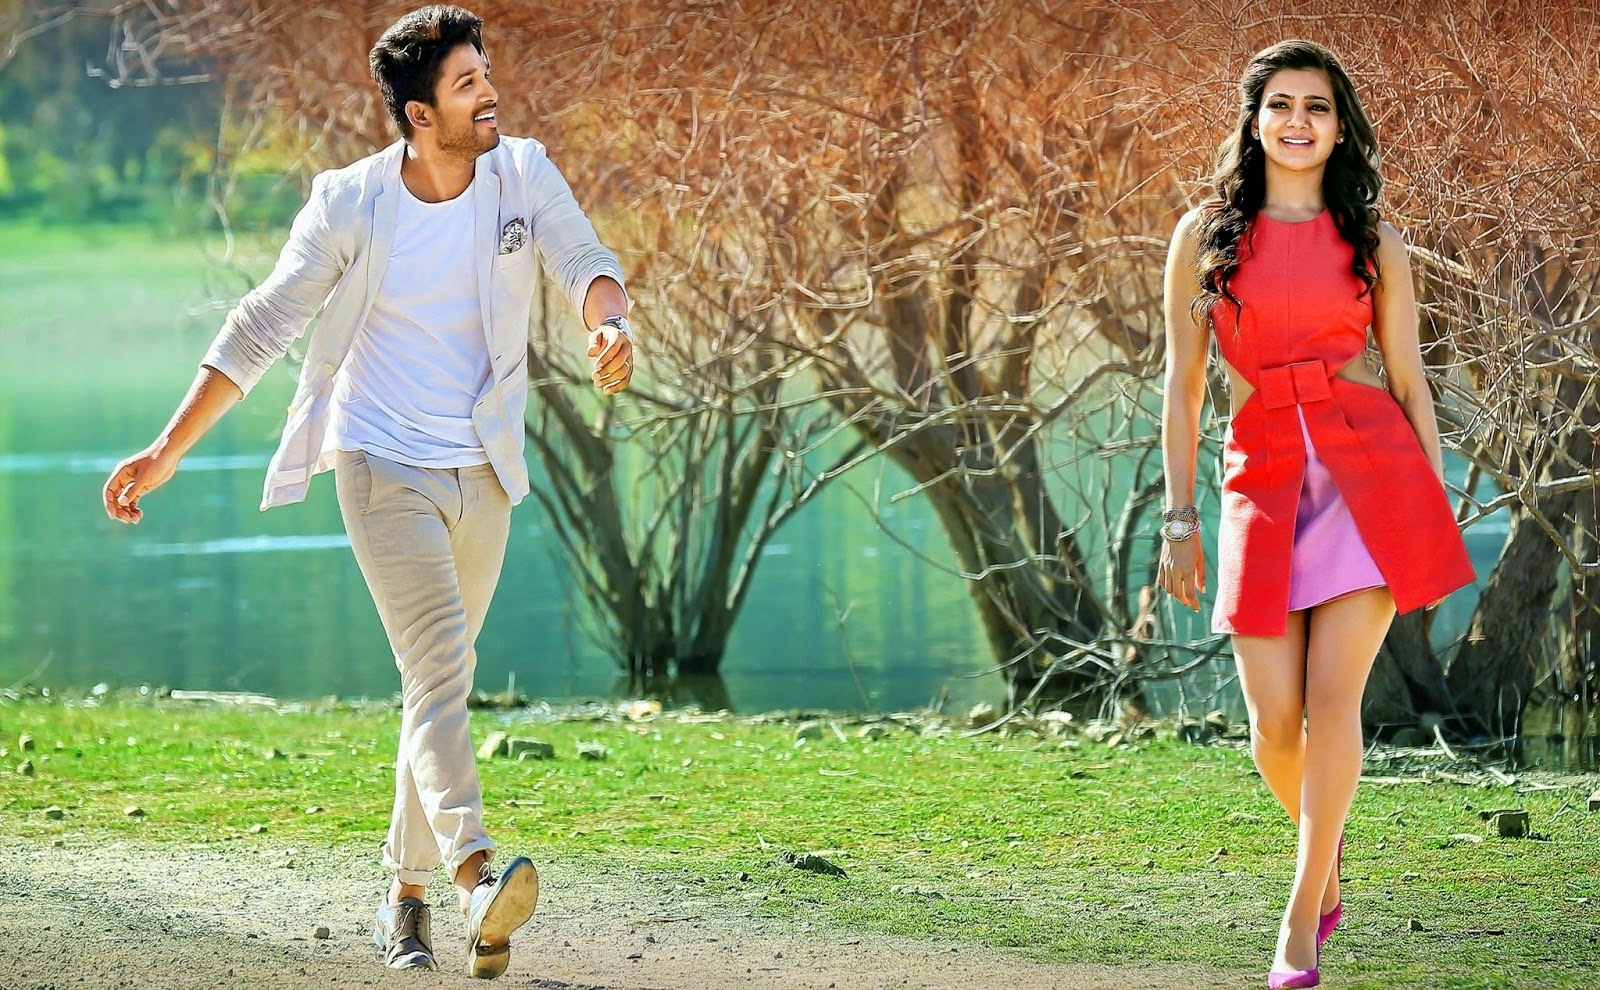 sonf of satyamurthy 1 week total collection